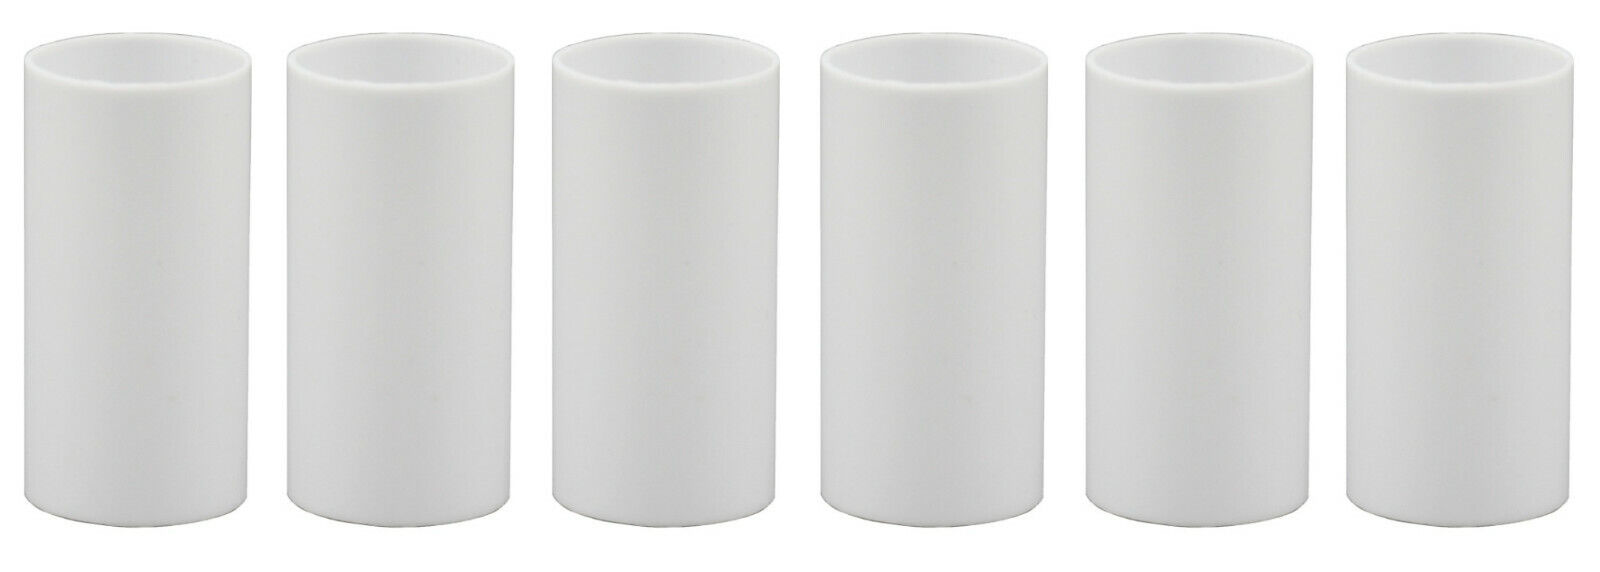 1 3/4 Inch White Plastic Candle Cover For Candelabra Base Lamp Sockets 6 Pieces Collectibles